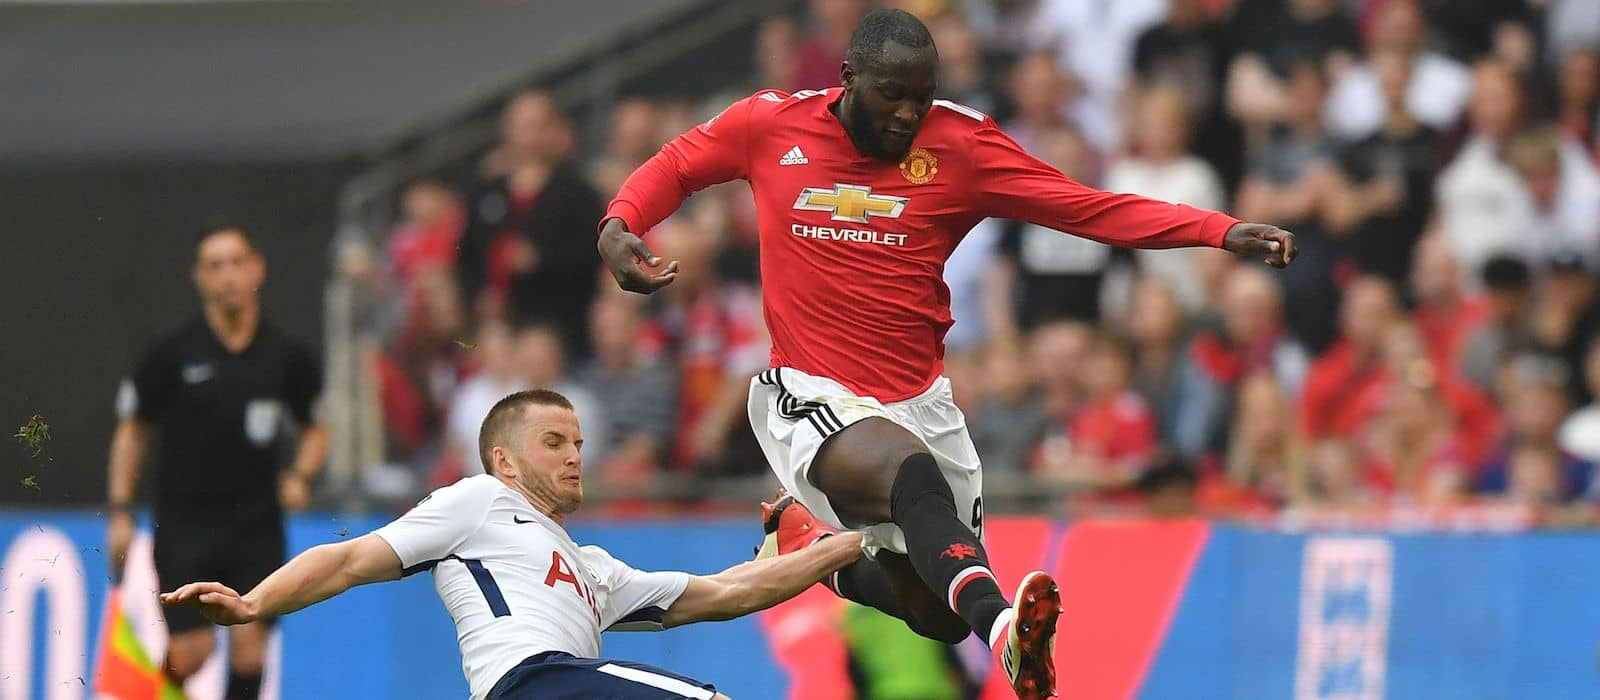 Brighton and Hove Albion vs Manchester United: Potential XI with Romelu Lukaku